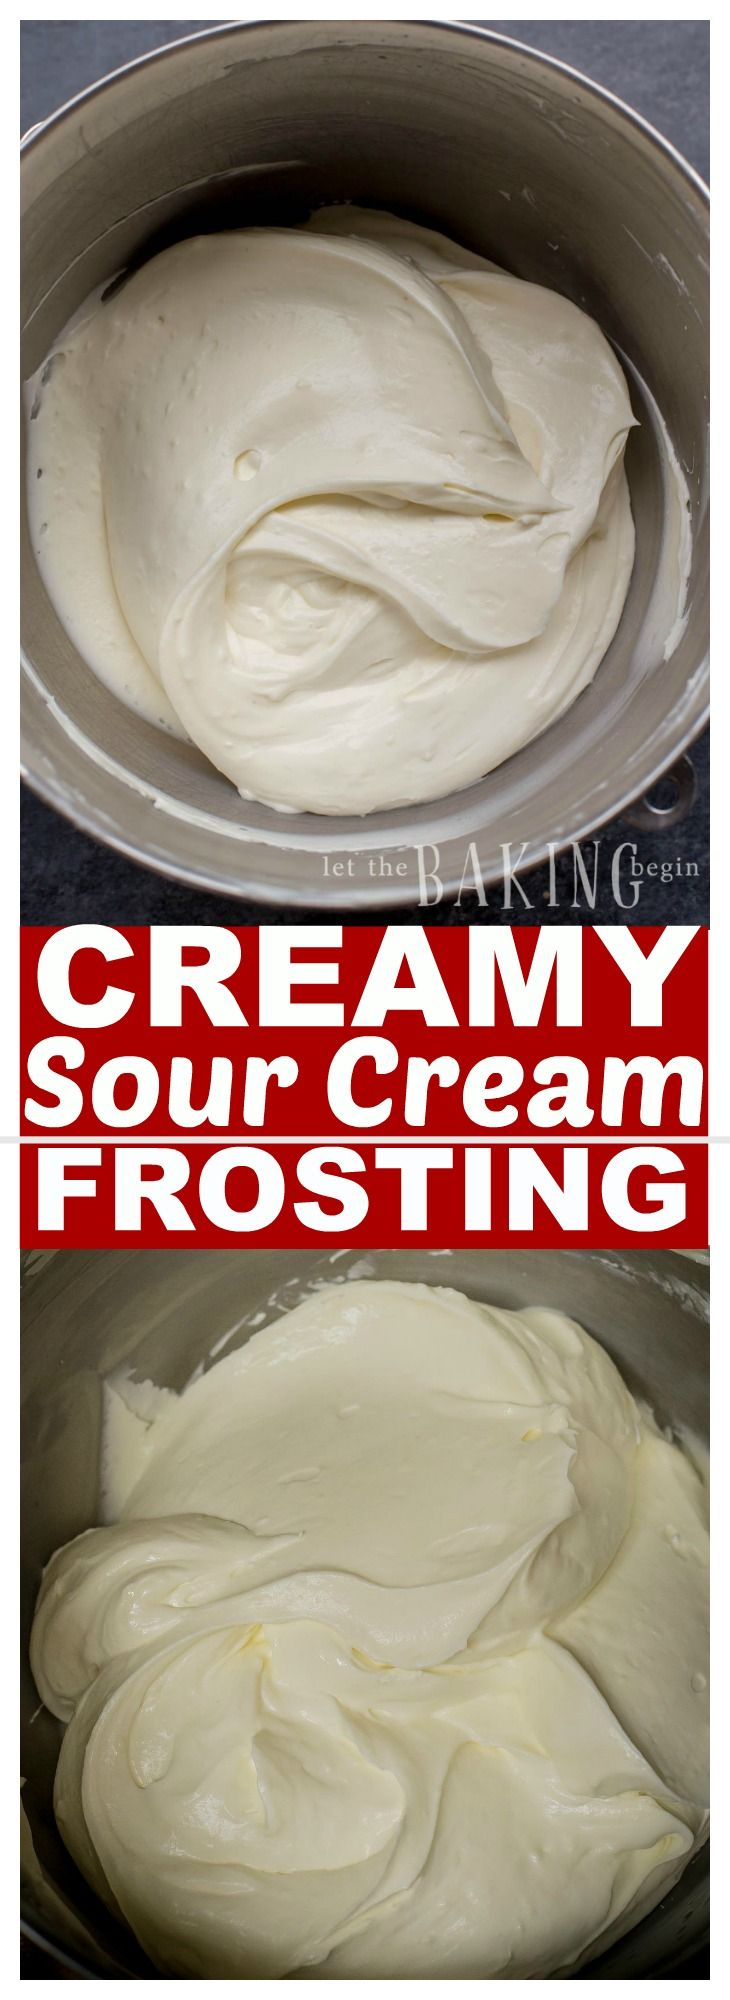 Creamy Sour Cream Frosting Is Tangy Creamy And All Around Delicious Frosting That Can Be Used To Sour Cream Frosting Sour Cream Recipes Sour Cream Cheesecake